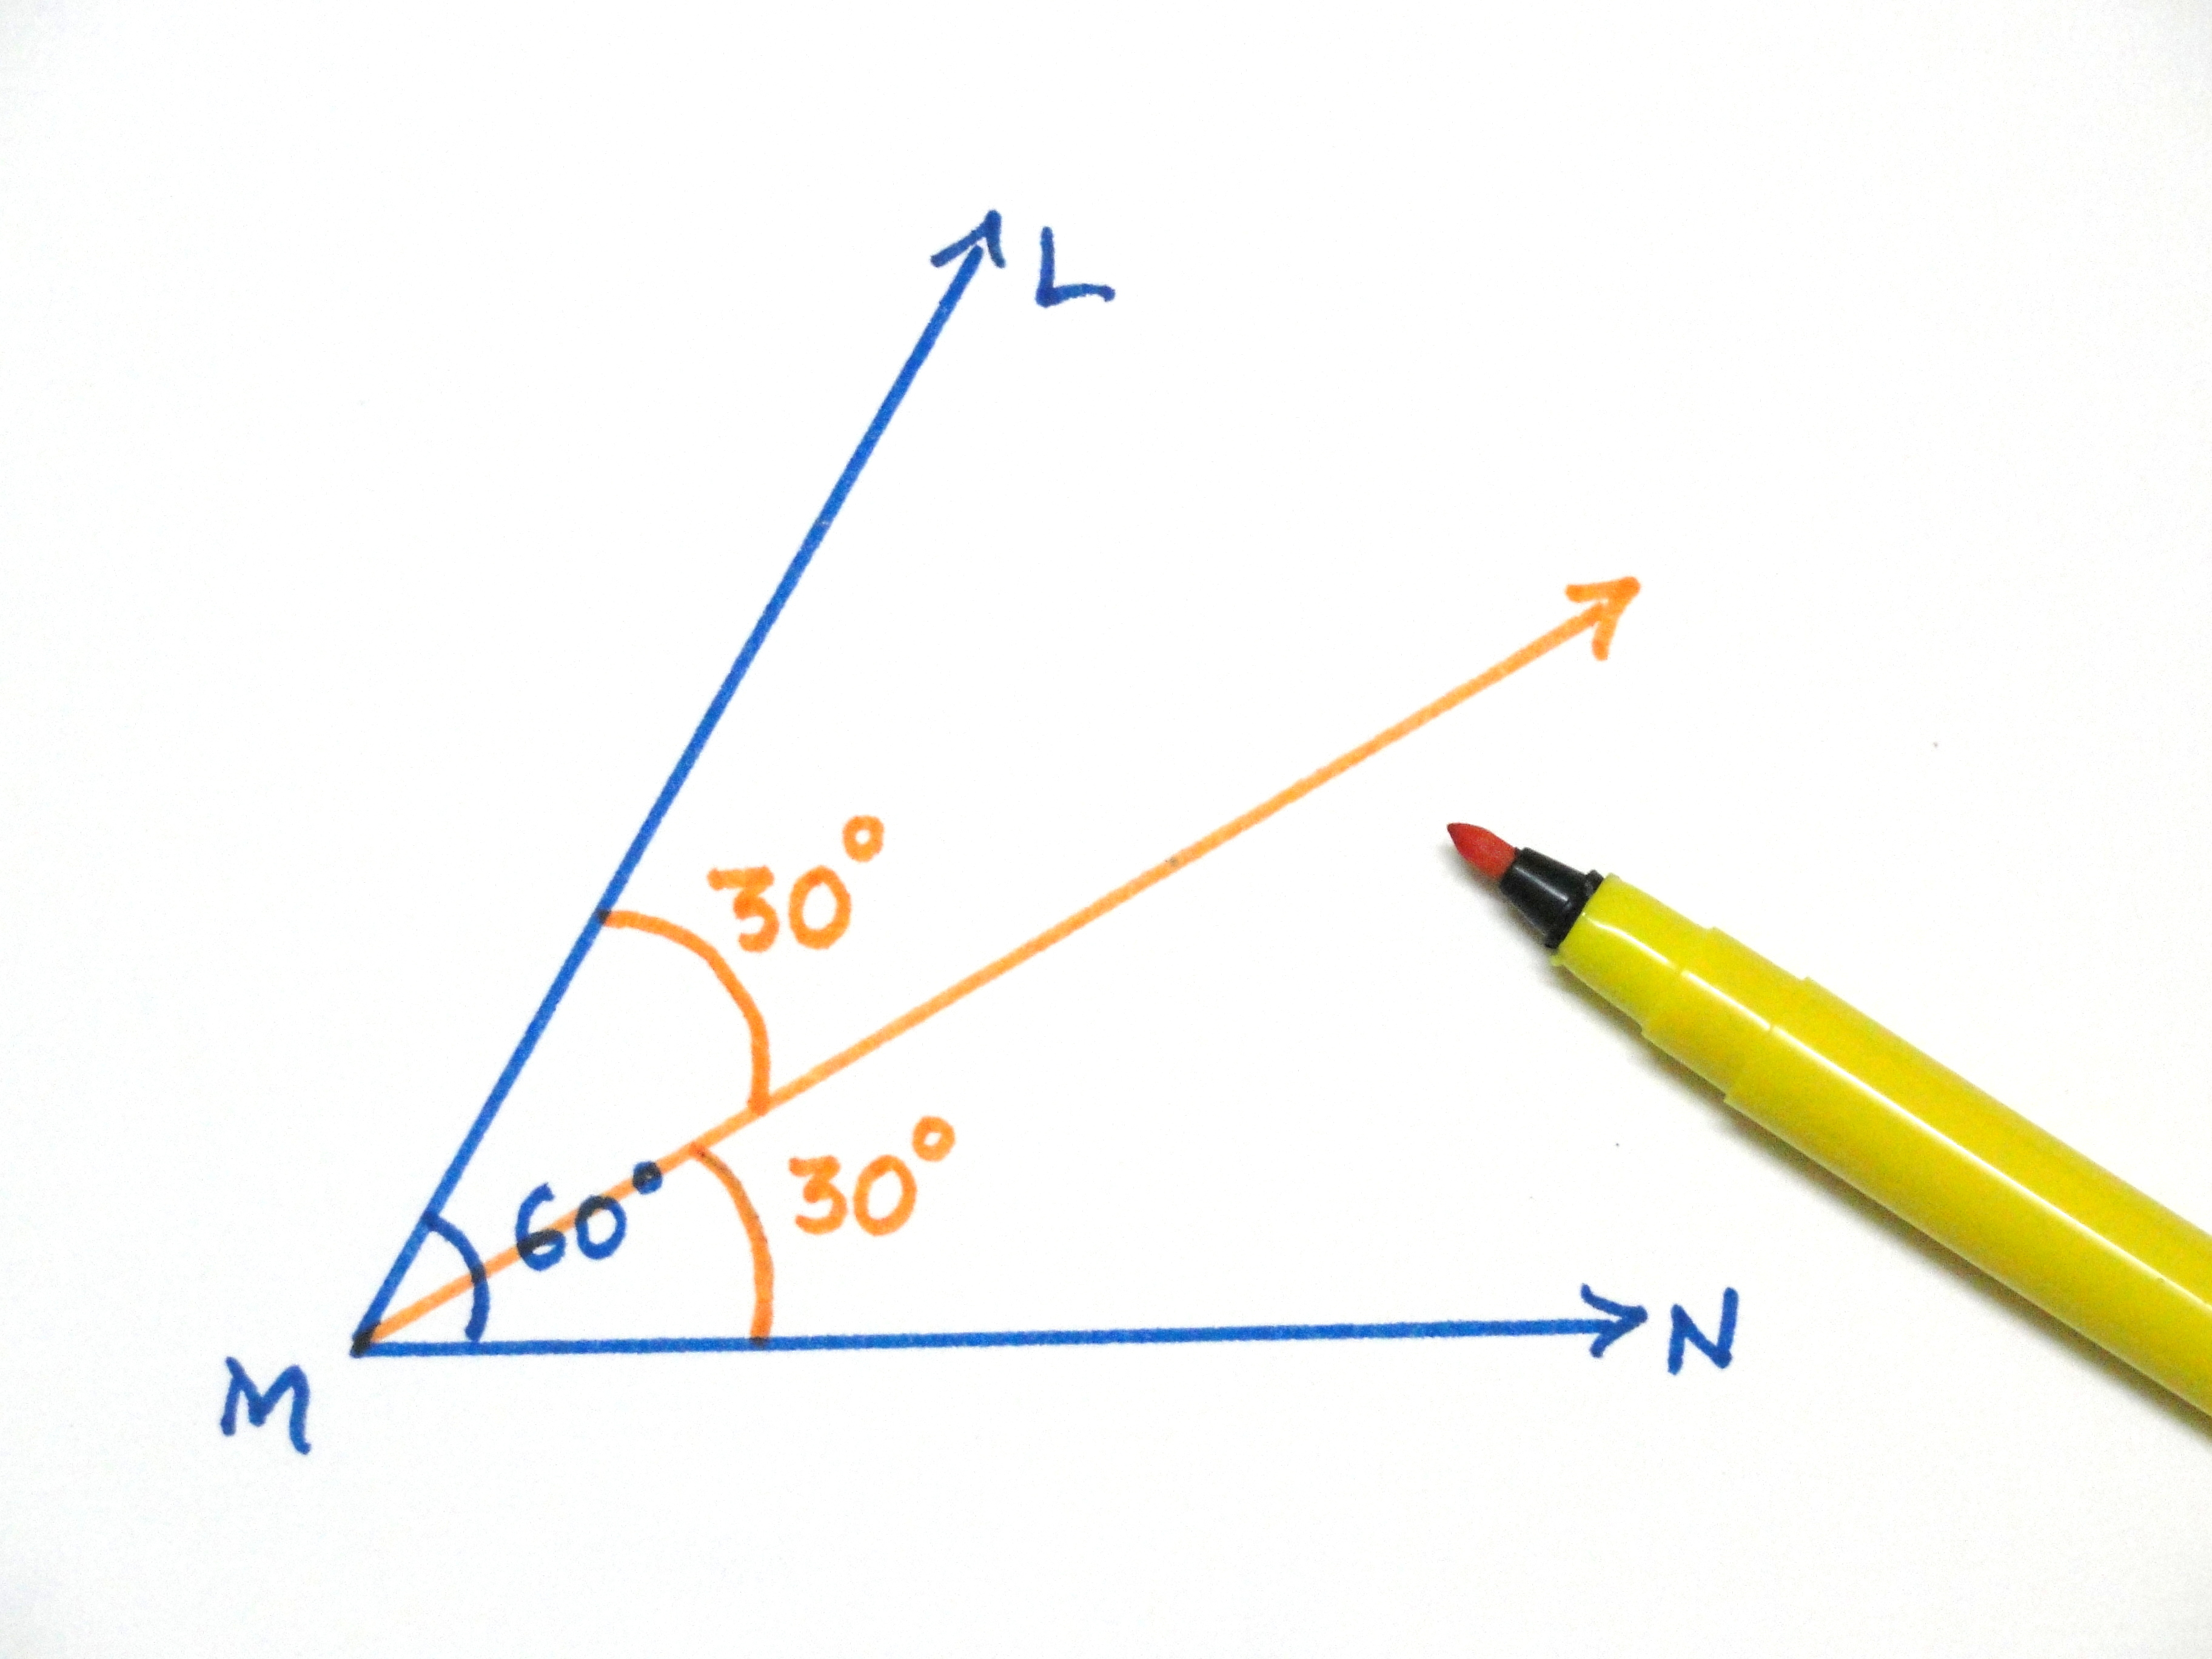 3648x2736 To Construct A 30 Degrees Angle Using Compass And Straightedge